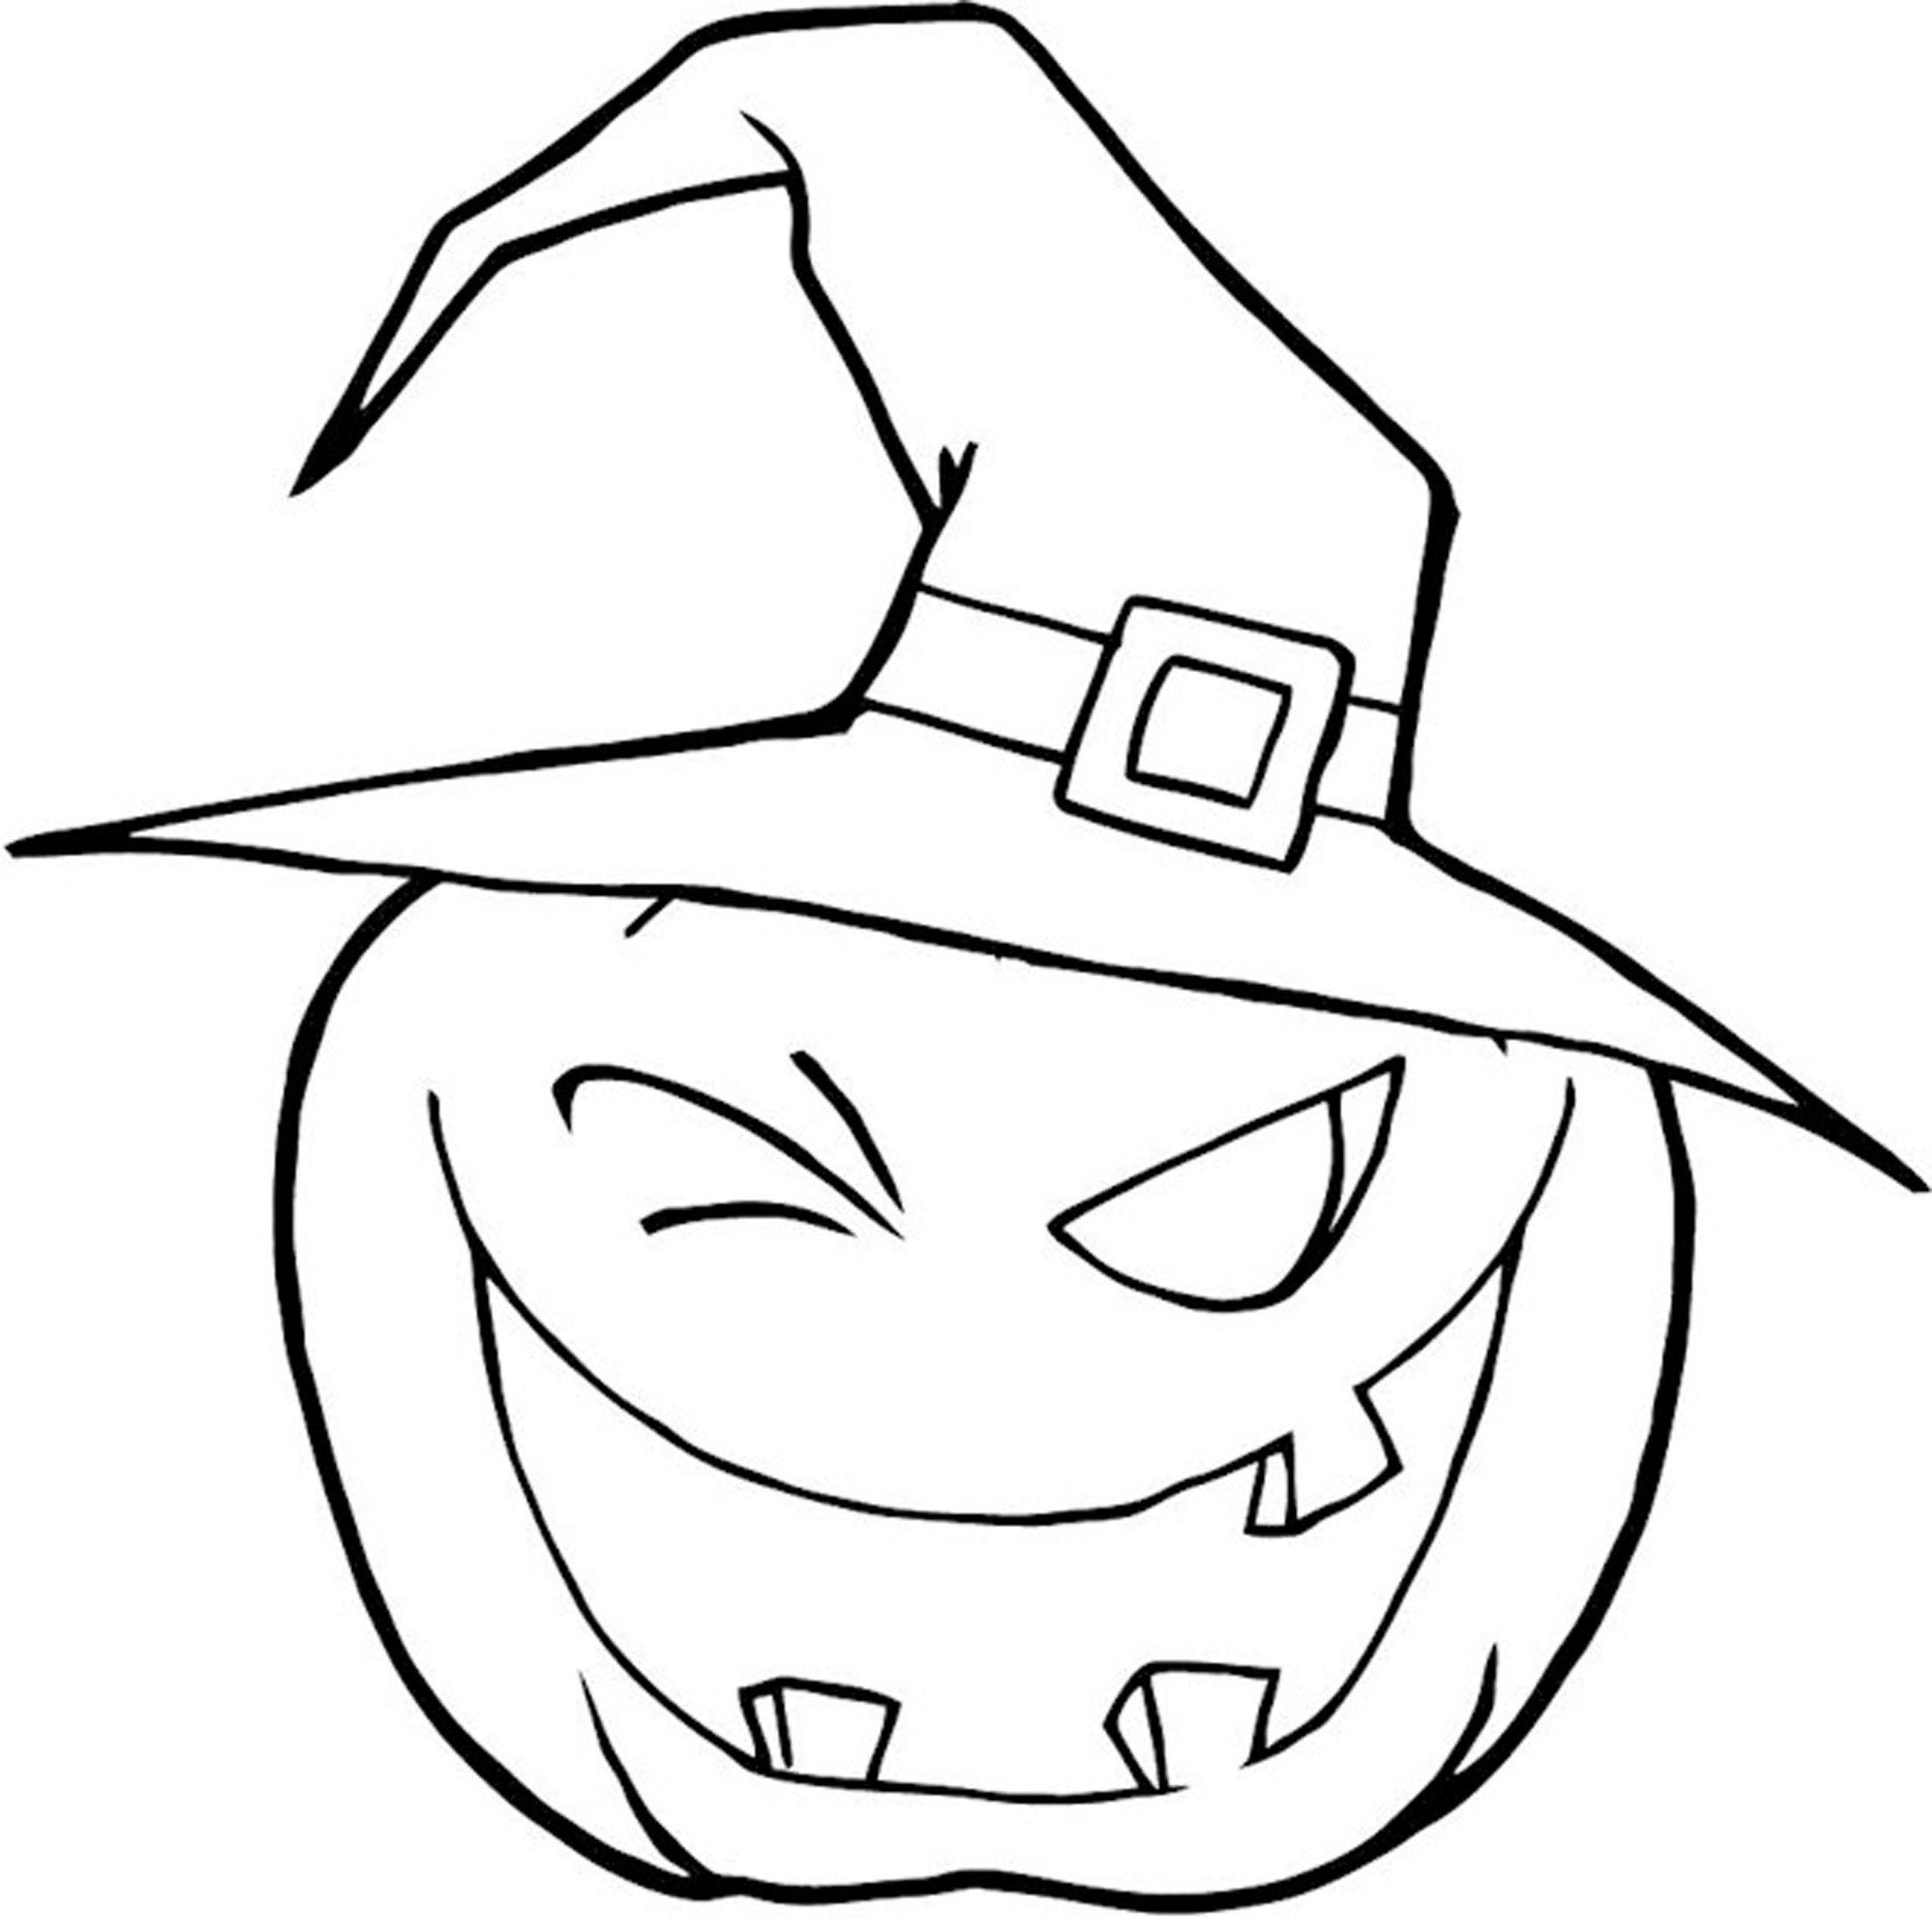 2550x2531 Halloween Witches Hat Coloring Page